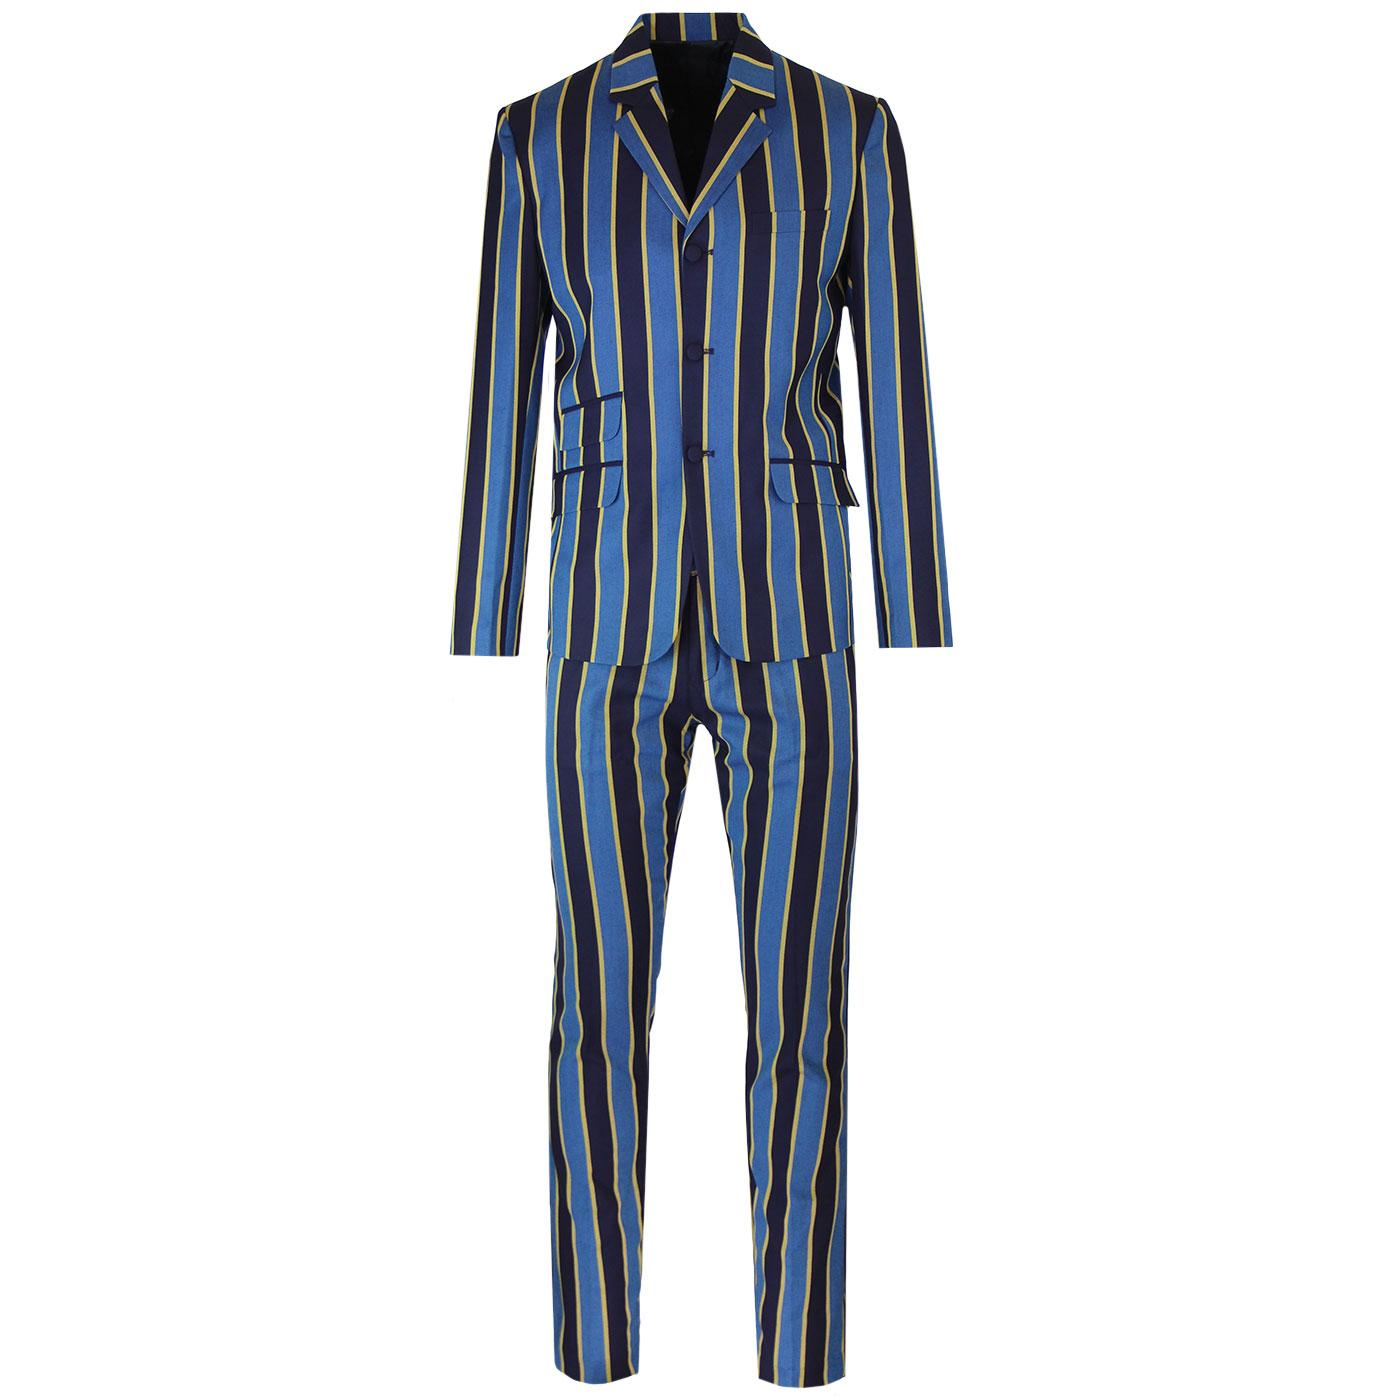 Offbeat MADCAP ENGLAND Mod Striped Slim Leg Suit